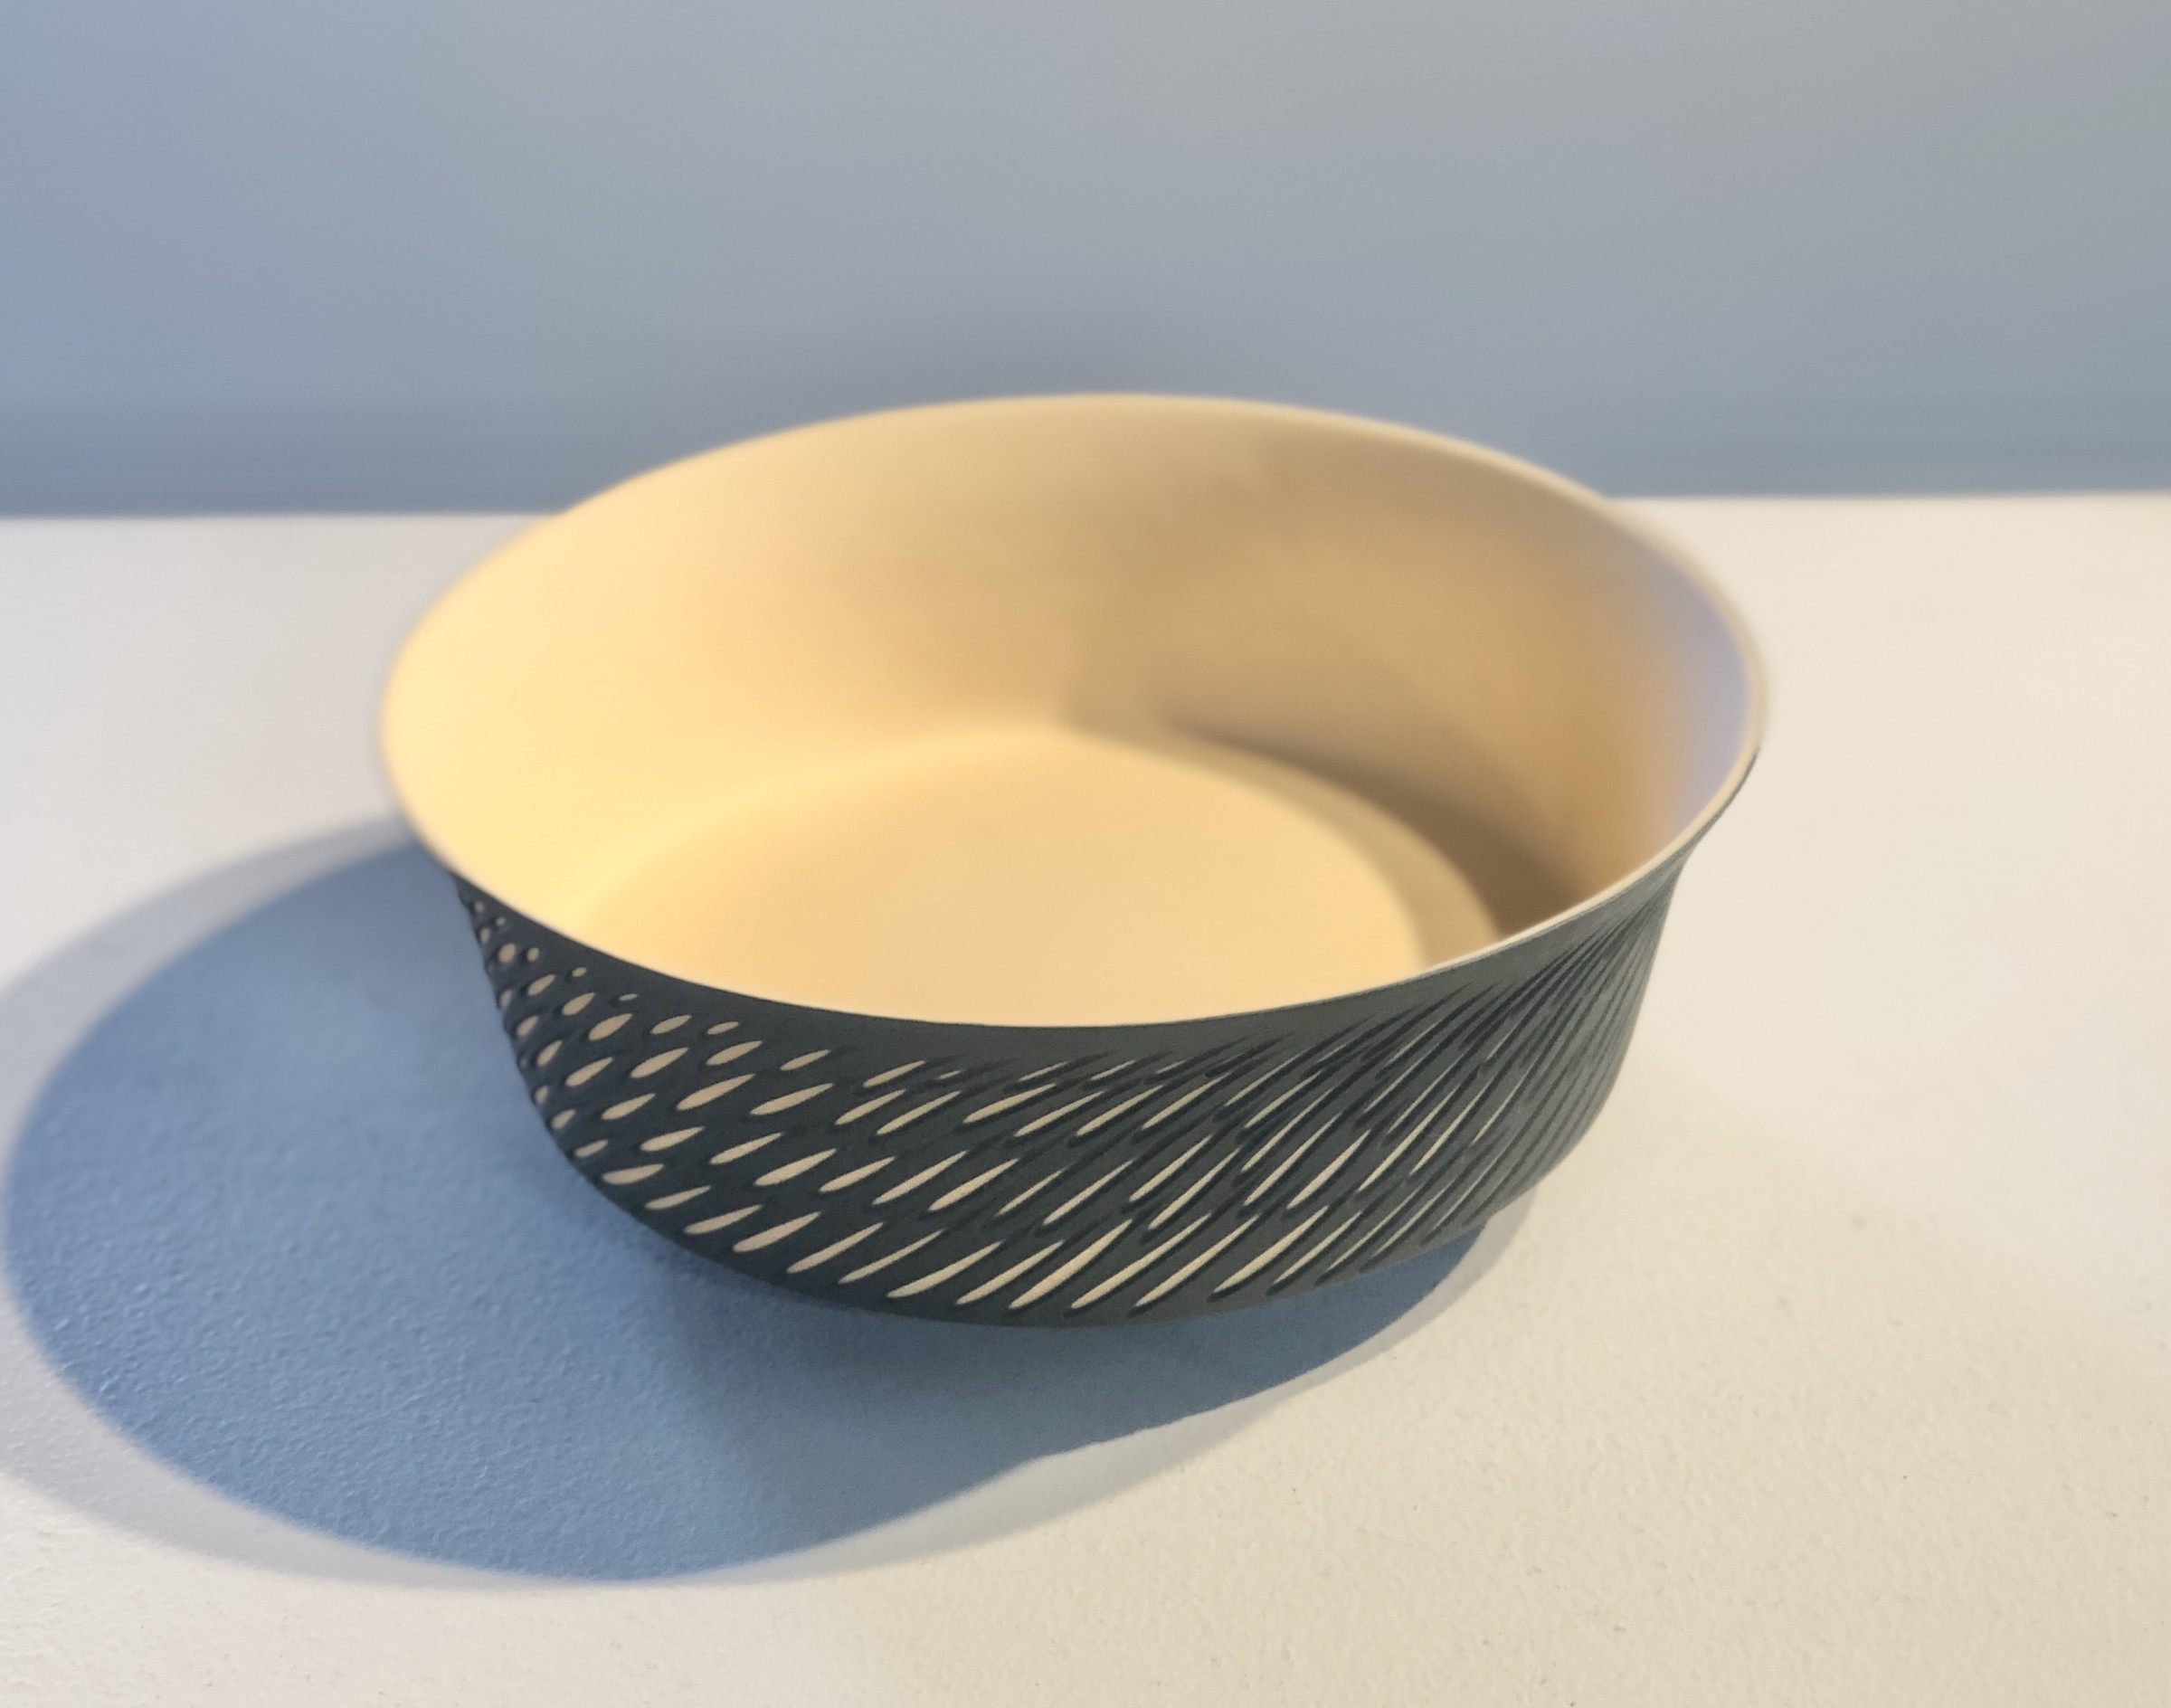 "<span class=""link fancybox-details-link""><a href=""/artists/60-sasha-wardell/works/7061-sasha-wardell-small-straight-sided-shoal-dish-2020/"">View Detail Page</a></span><div class=""artist""><strong>Sasha Wardell</strong></div> b. 1956 <div class=""title""><em>Small Straight Sided Shoal Dish</em>, 2020</div> <div class=""medium"">Layered Porcelain </div><div class=""price"">£210.00</div><div class=""copyright_line"">Ownart: £21 x 10 Months, 0% APR</div>"